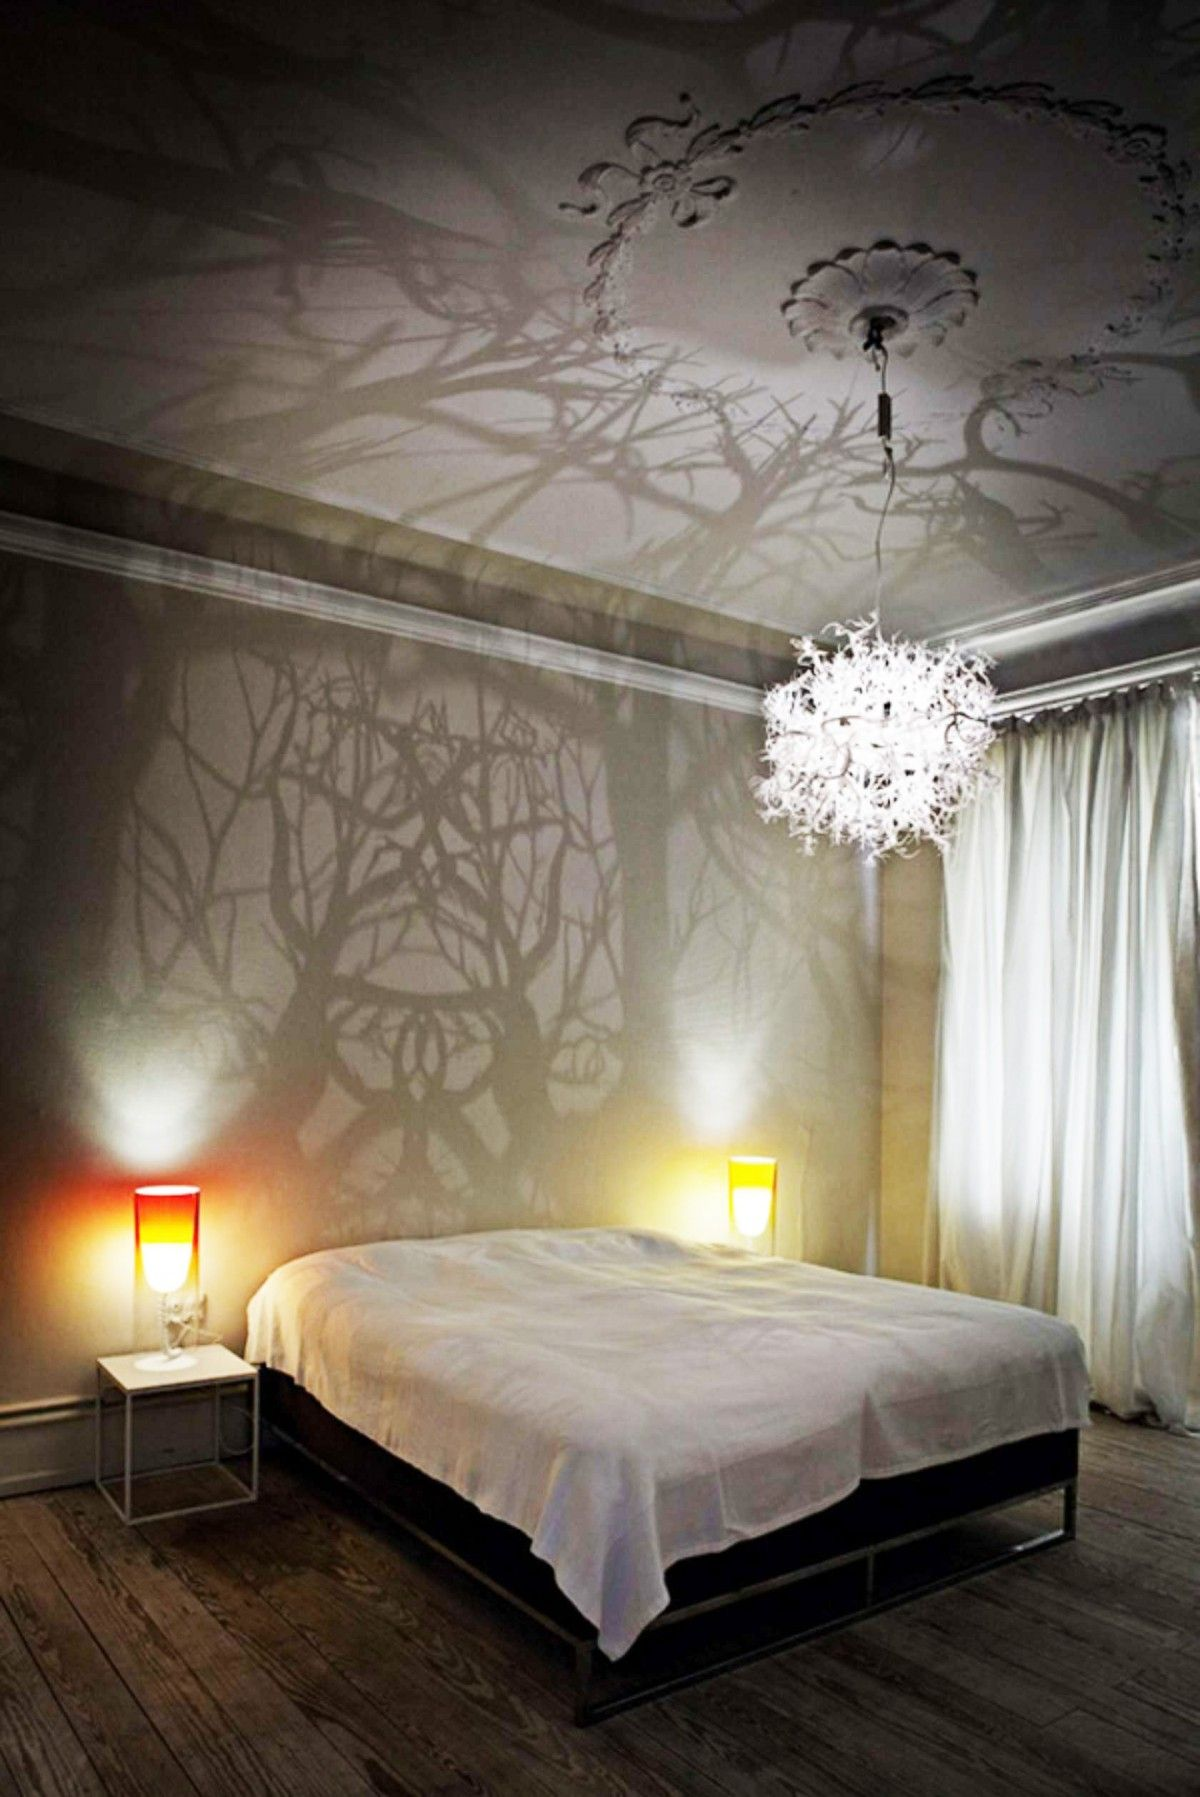 Design You Room: This Chandelier Will Turn Your Room Into A Magical Forest